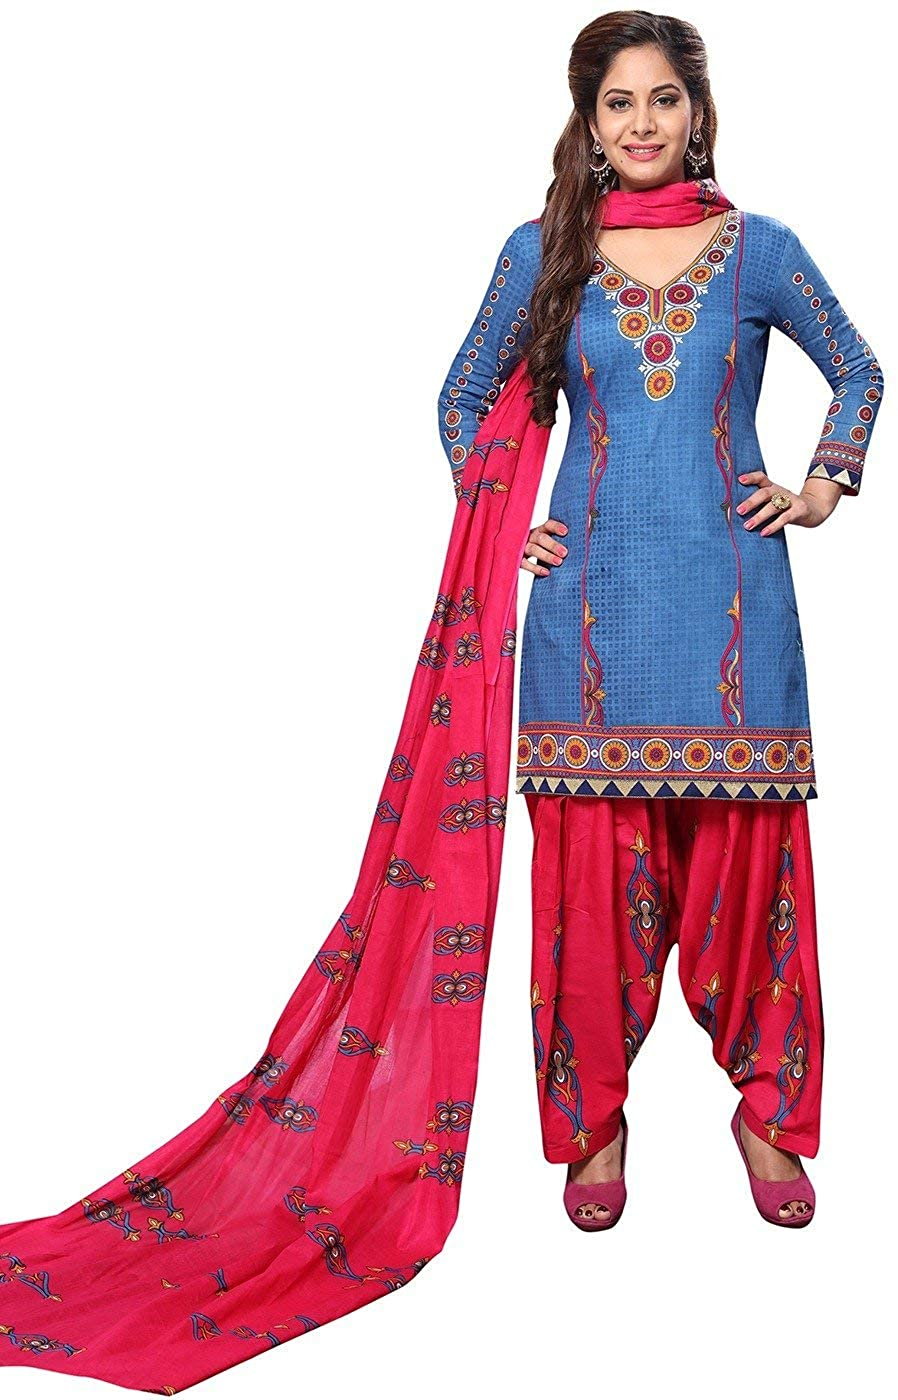 Indian Decor & Attire Women's Unstitched Cotton Printed Dress Material (P-1111_Blue & Pink_Free Size)